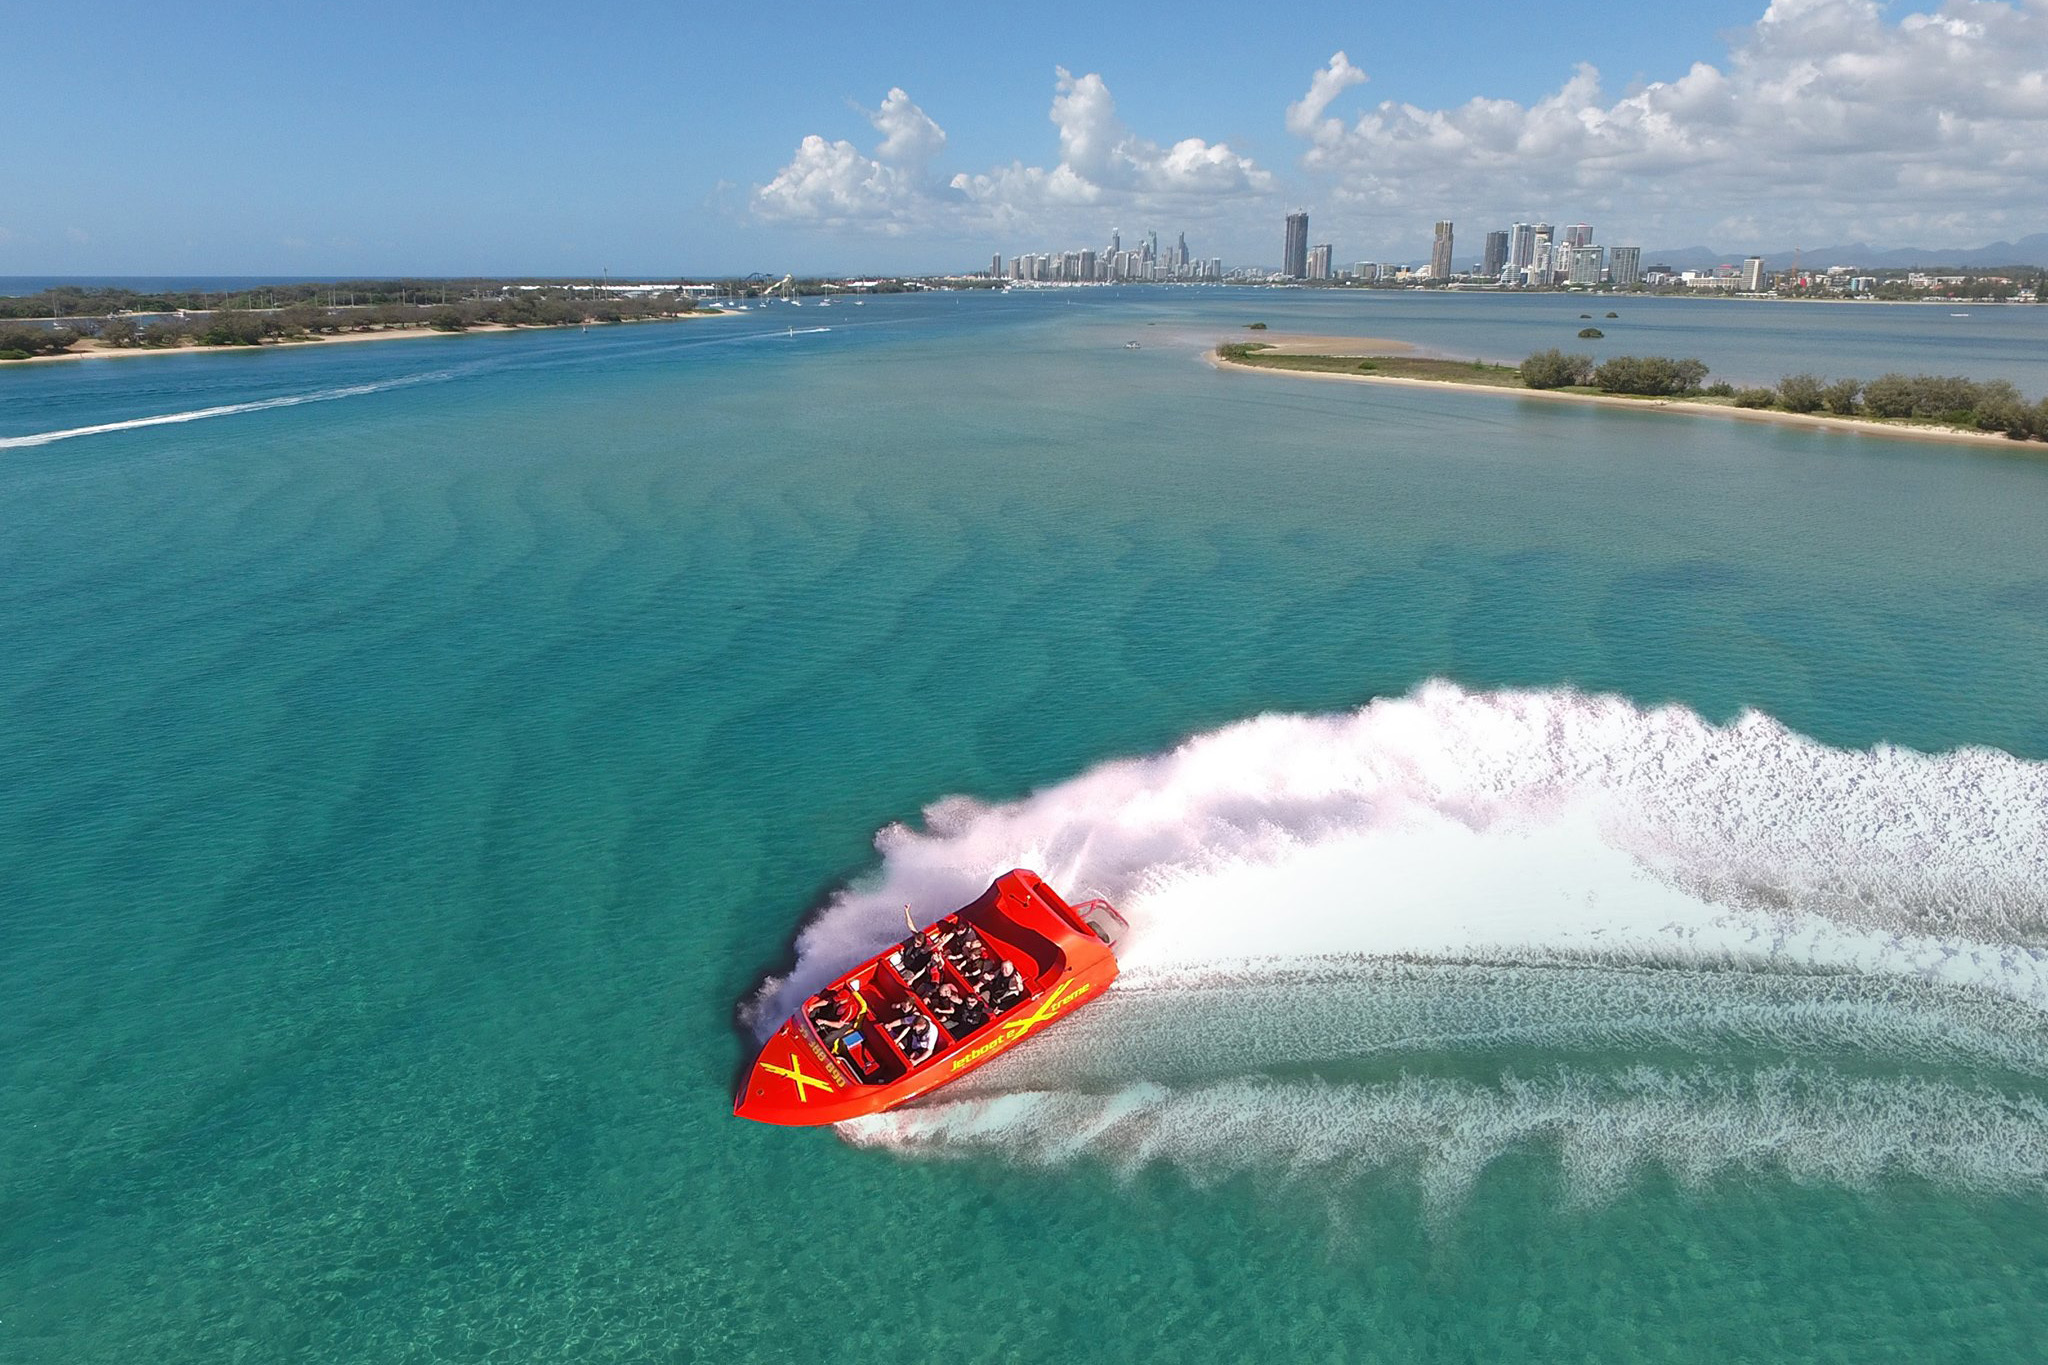 Jet Boat Extreme, eitw